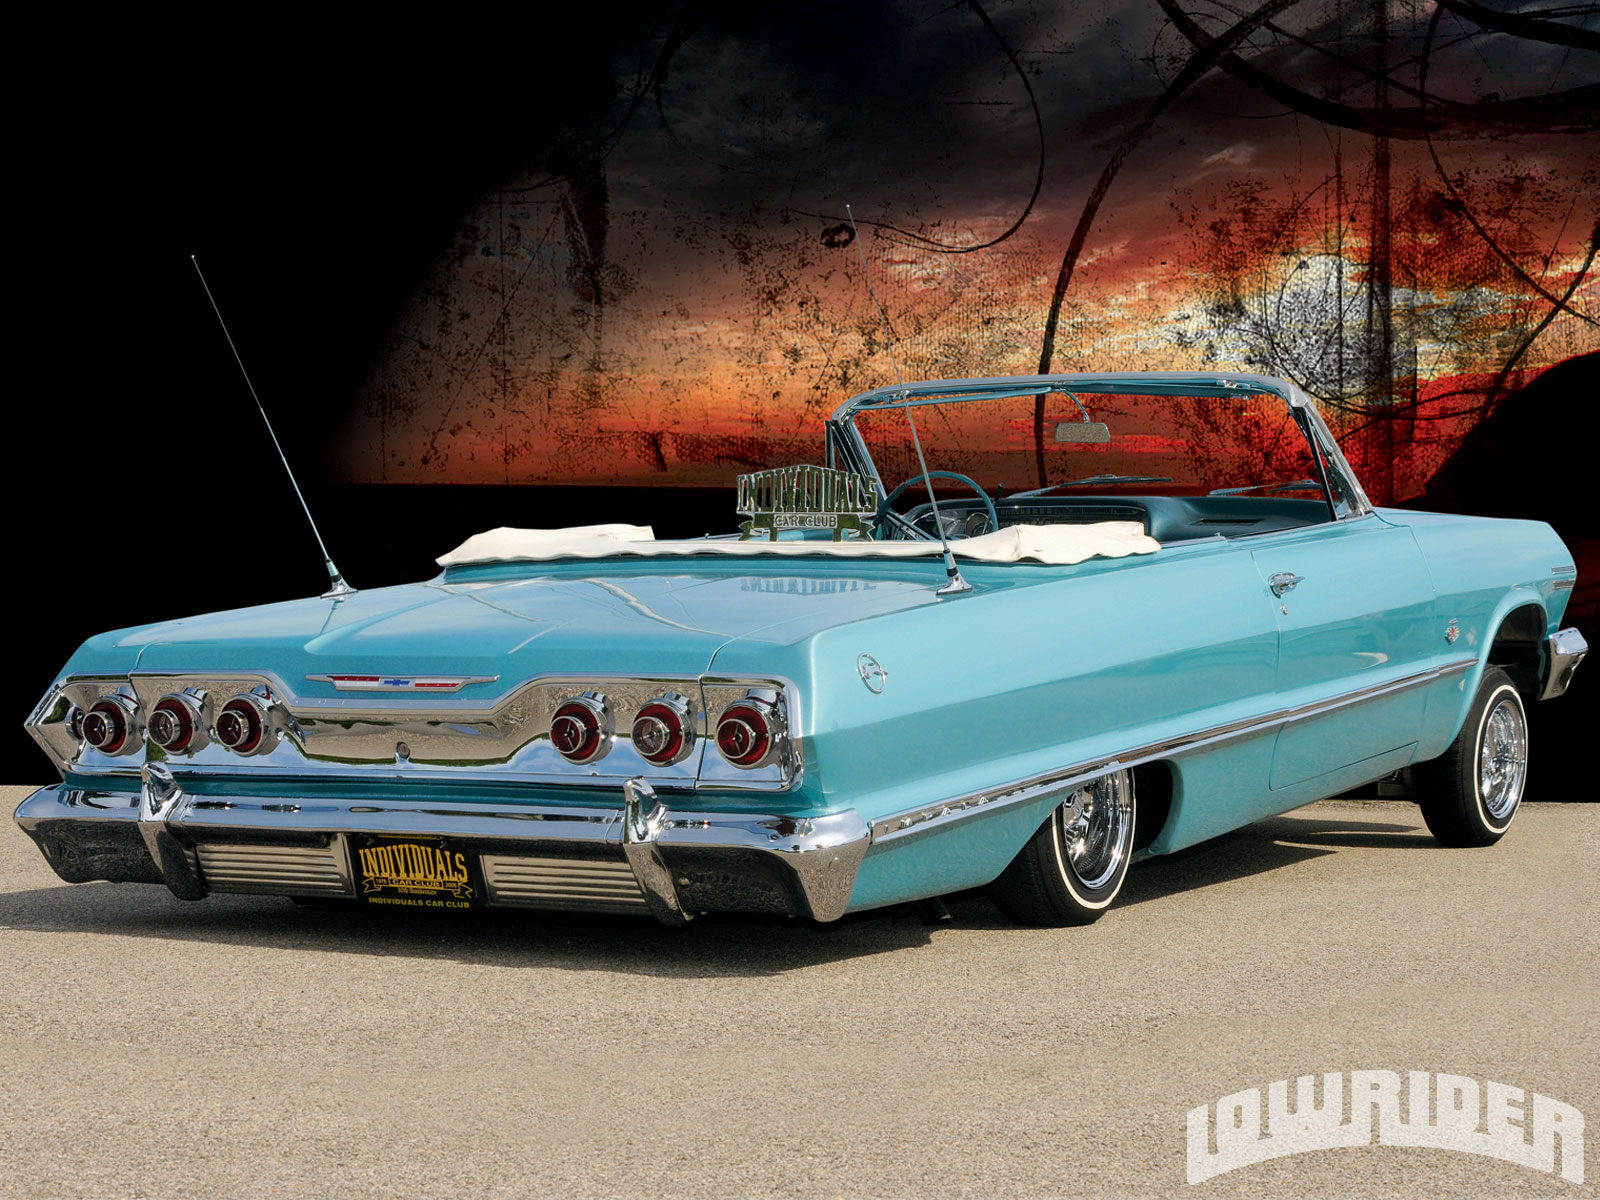 1963 Chevrolet Impala Backgrounds on Wallpapers Vista